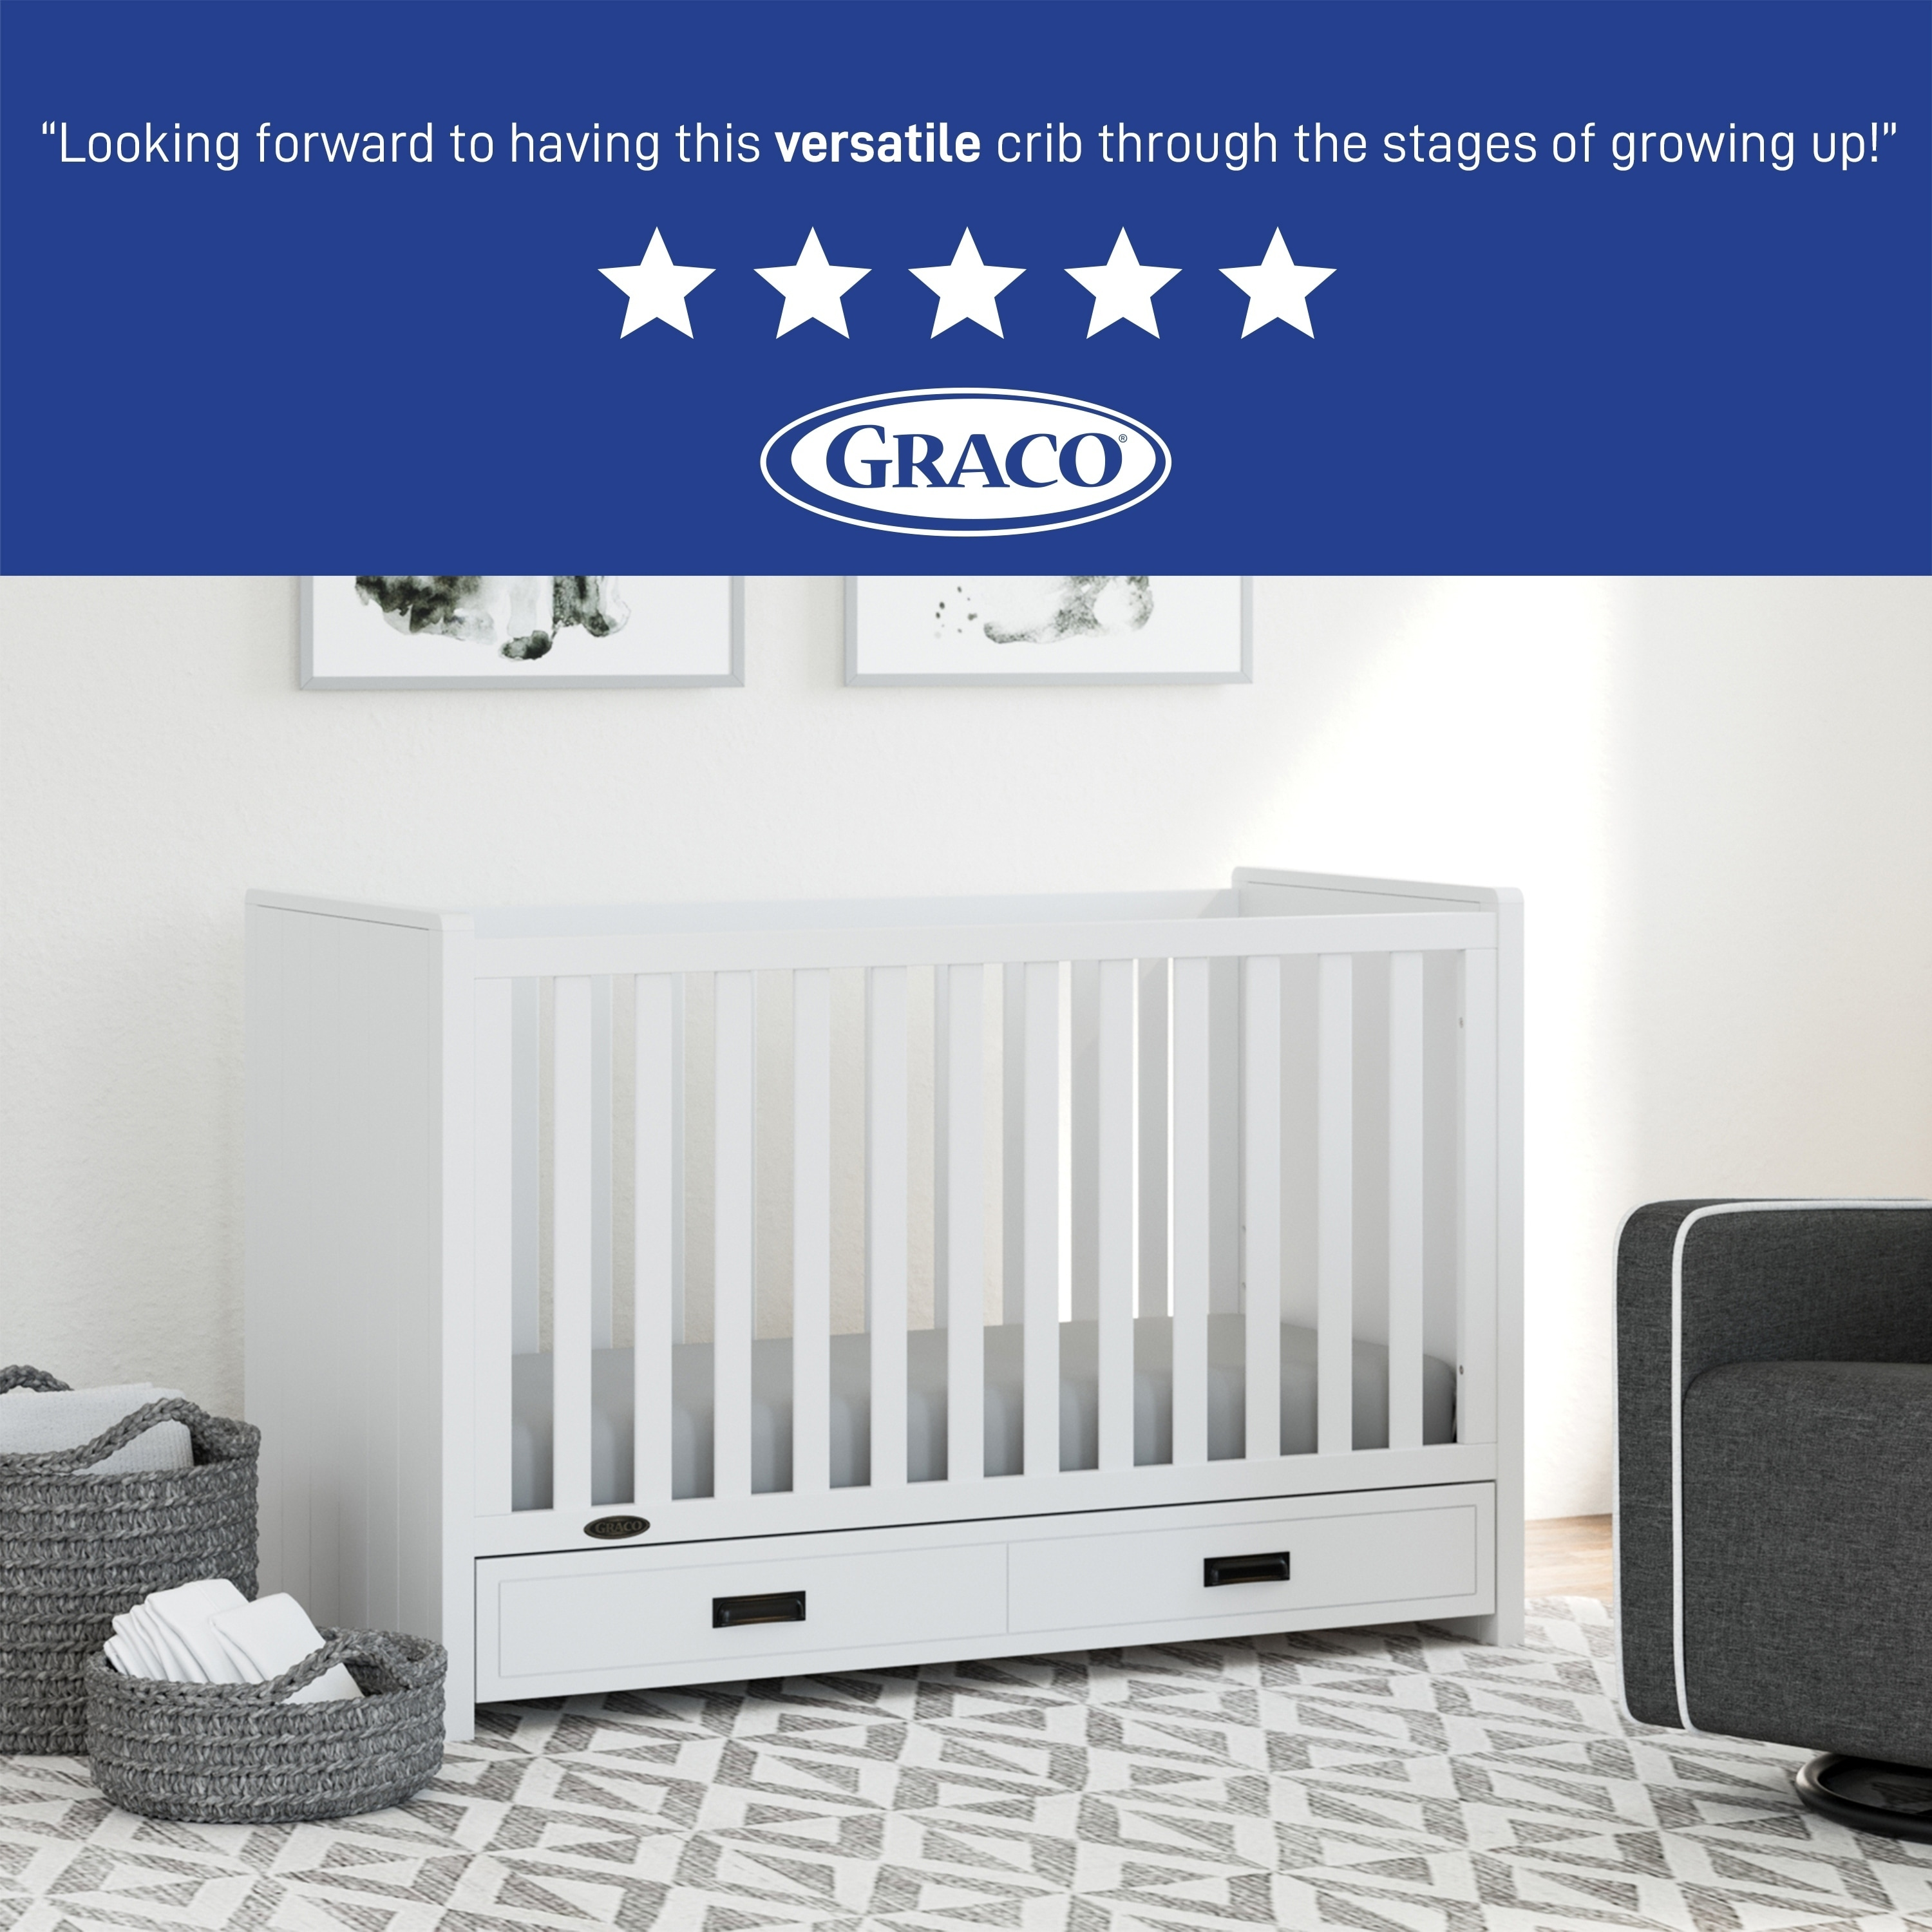 Shop Graco Cottage 3 In 1 Convertible Crib White Easily Converts To Toddler Bed Or Day Bed Overstock 28110688 White